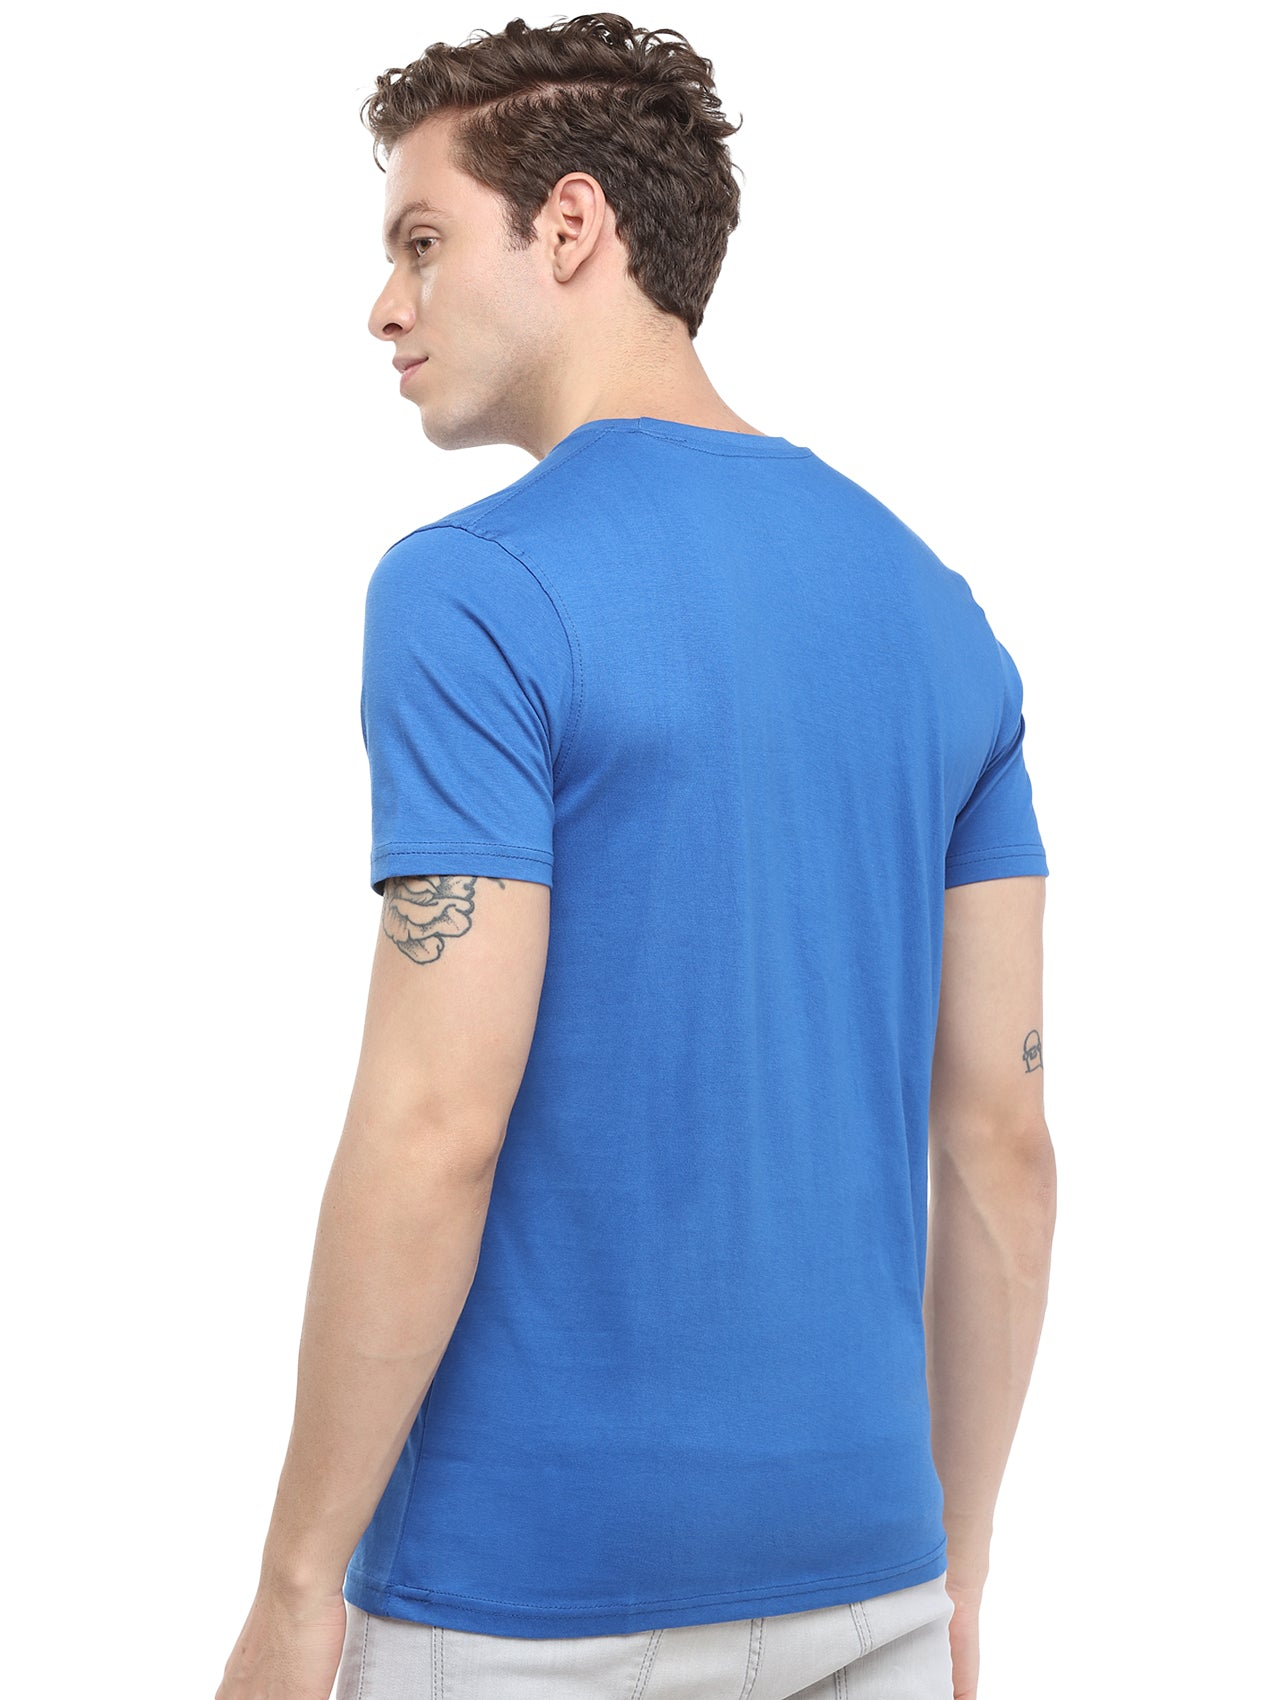 Rock Hooper - Men's Regular Fit Half Sleeve Round Neck Classic Blue Cotton T-shirt